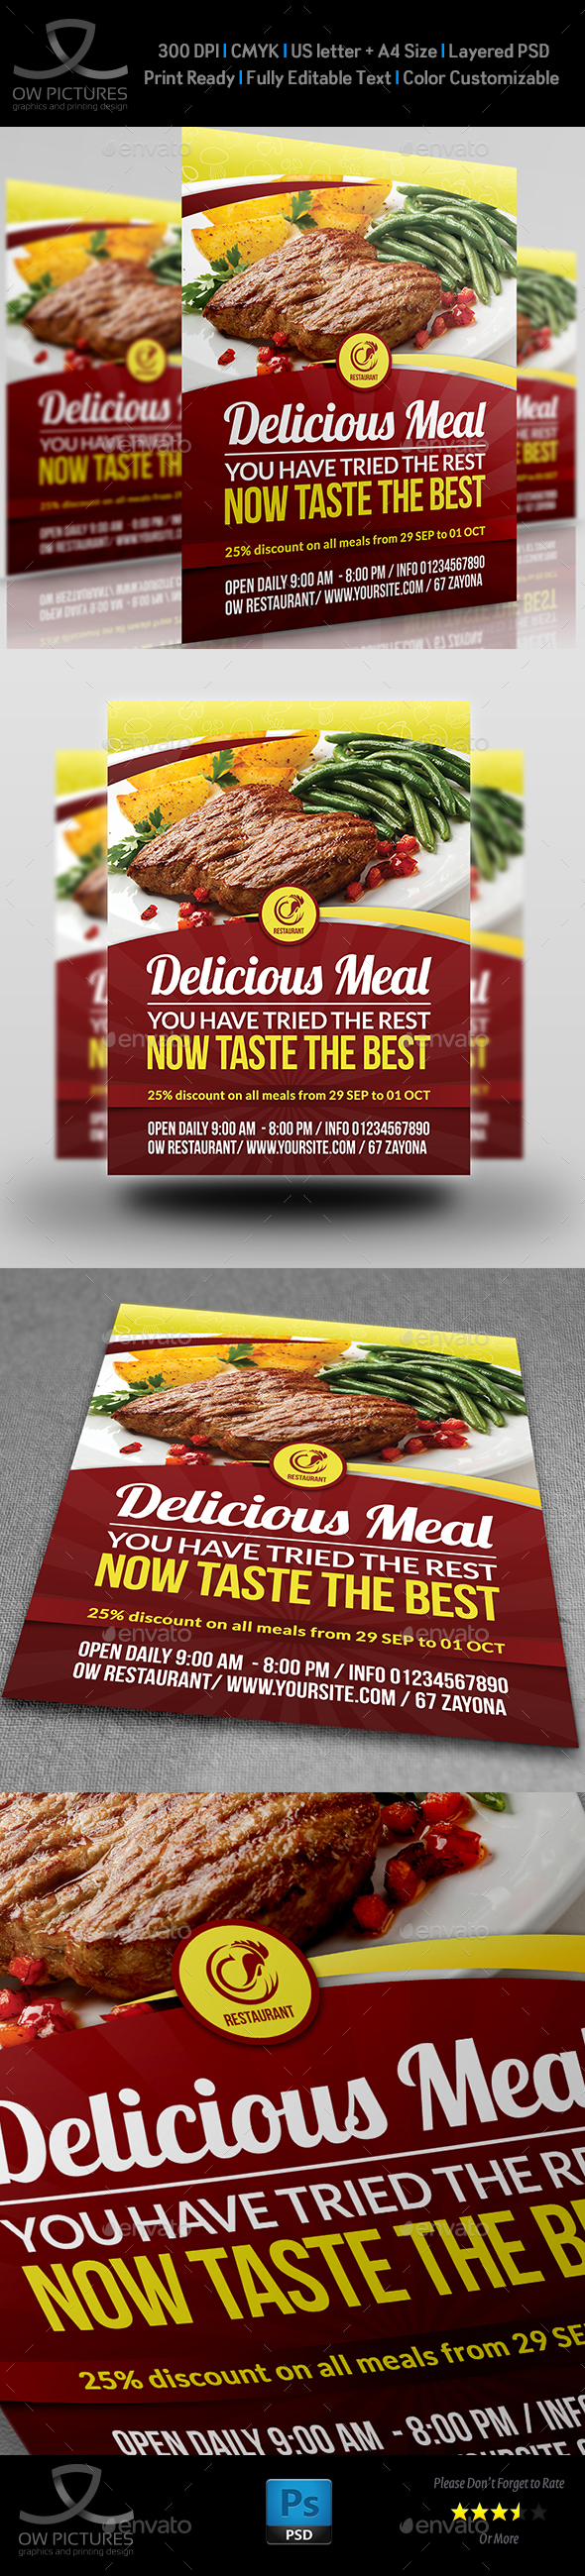 Restaurant Flyer Template Vol.9 - Restaurant Flyers